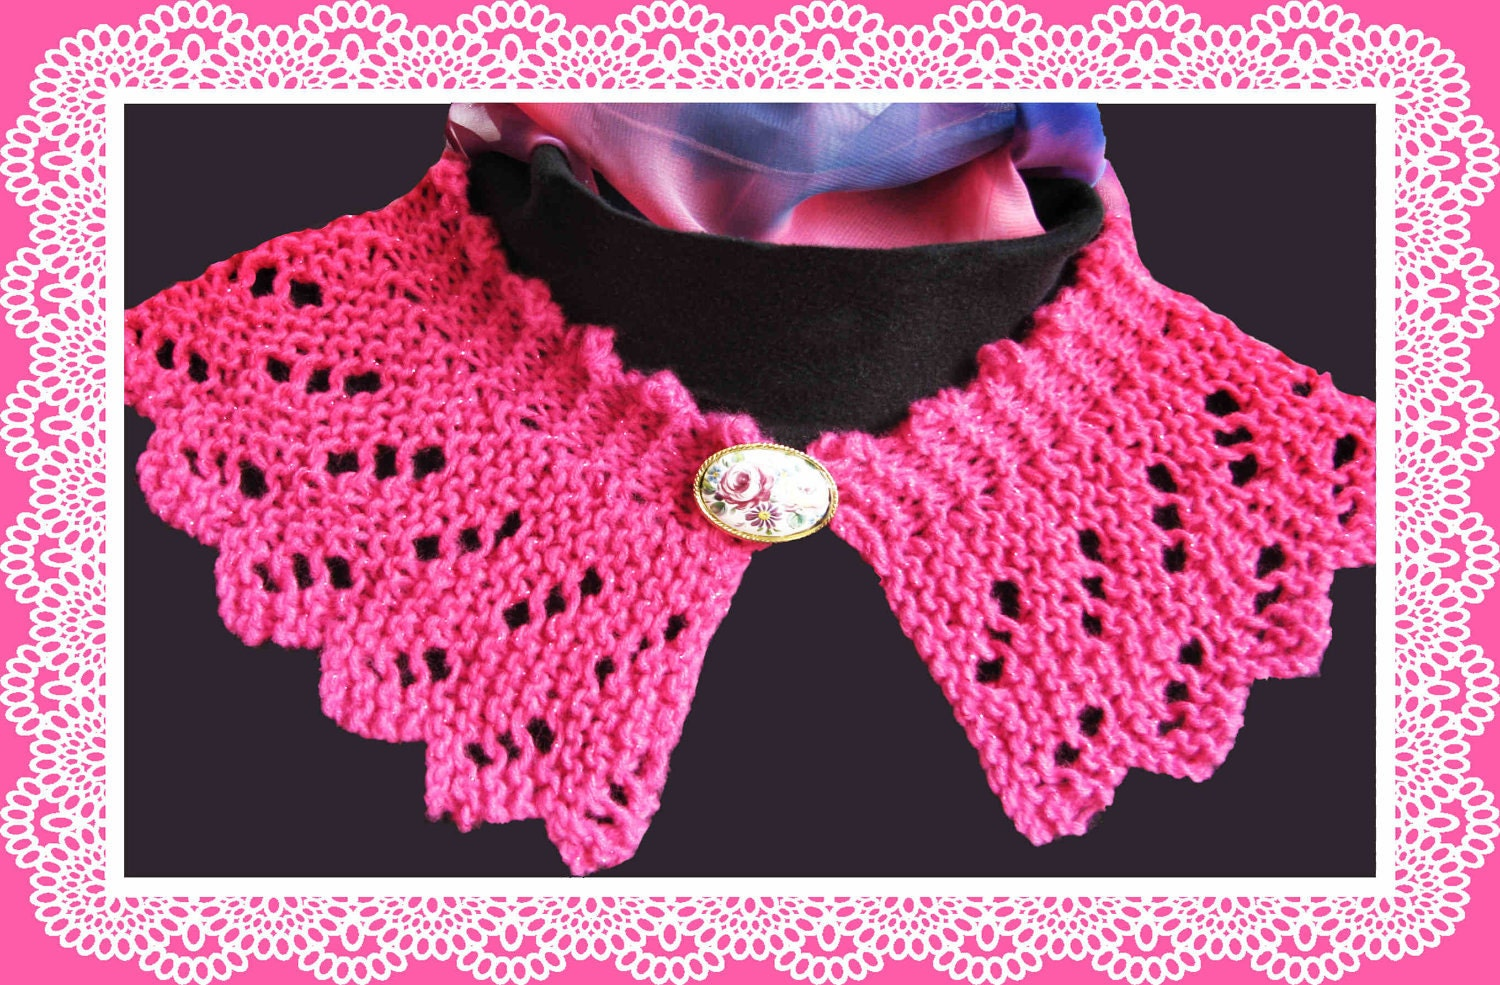 Knitting Patterns For Collar Scarf : Lace Collar knitting pattern Raspberry Ripple design